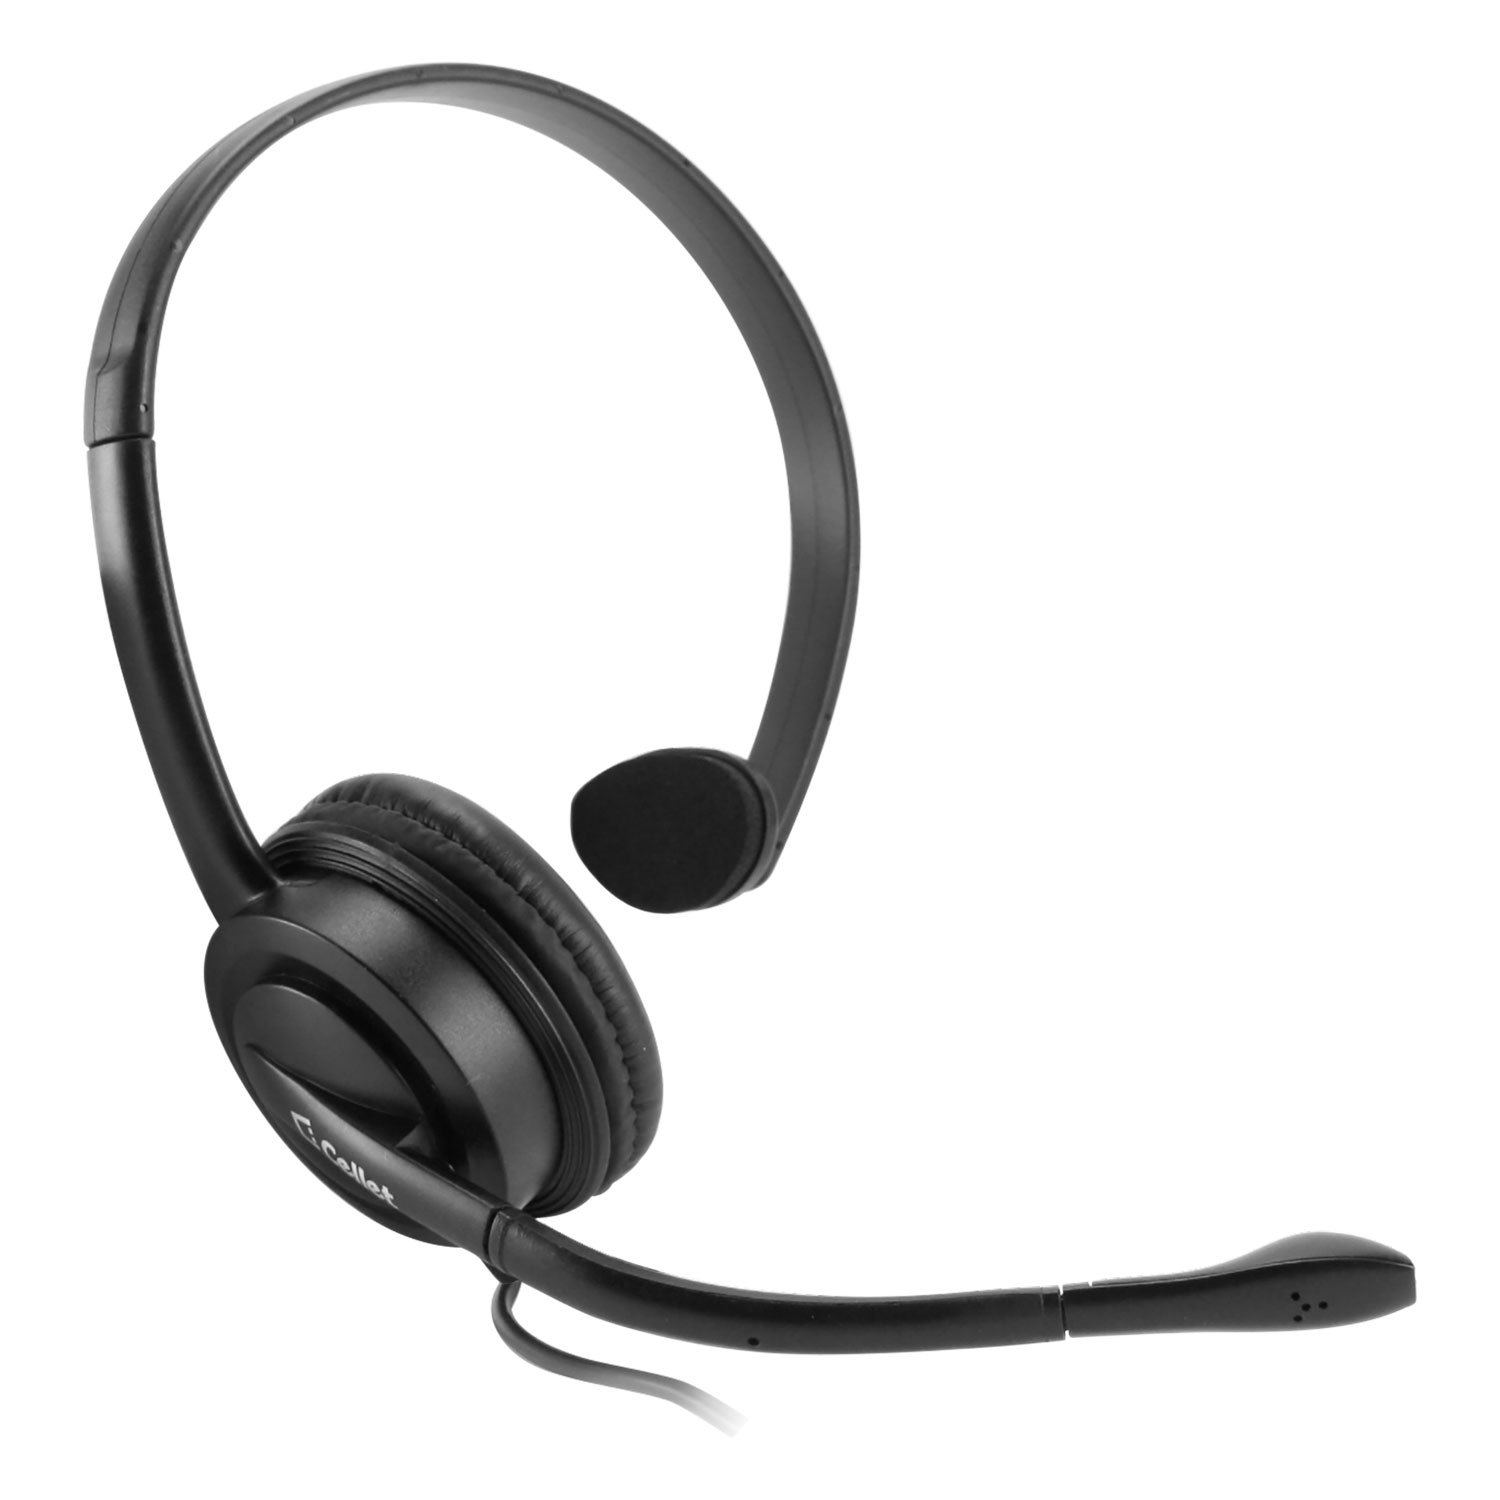 Cellet Universal Premium Mono 3.5mm Hands Free Headset with Boom Microphone, Retail Packaging, Black Pagecomm EP35OP